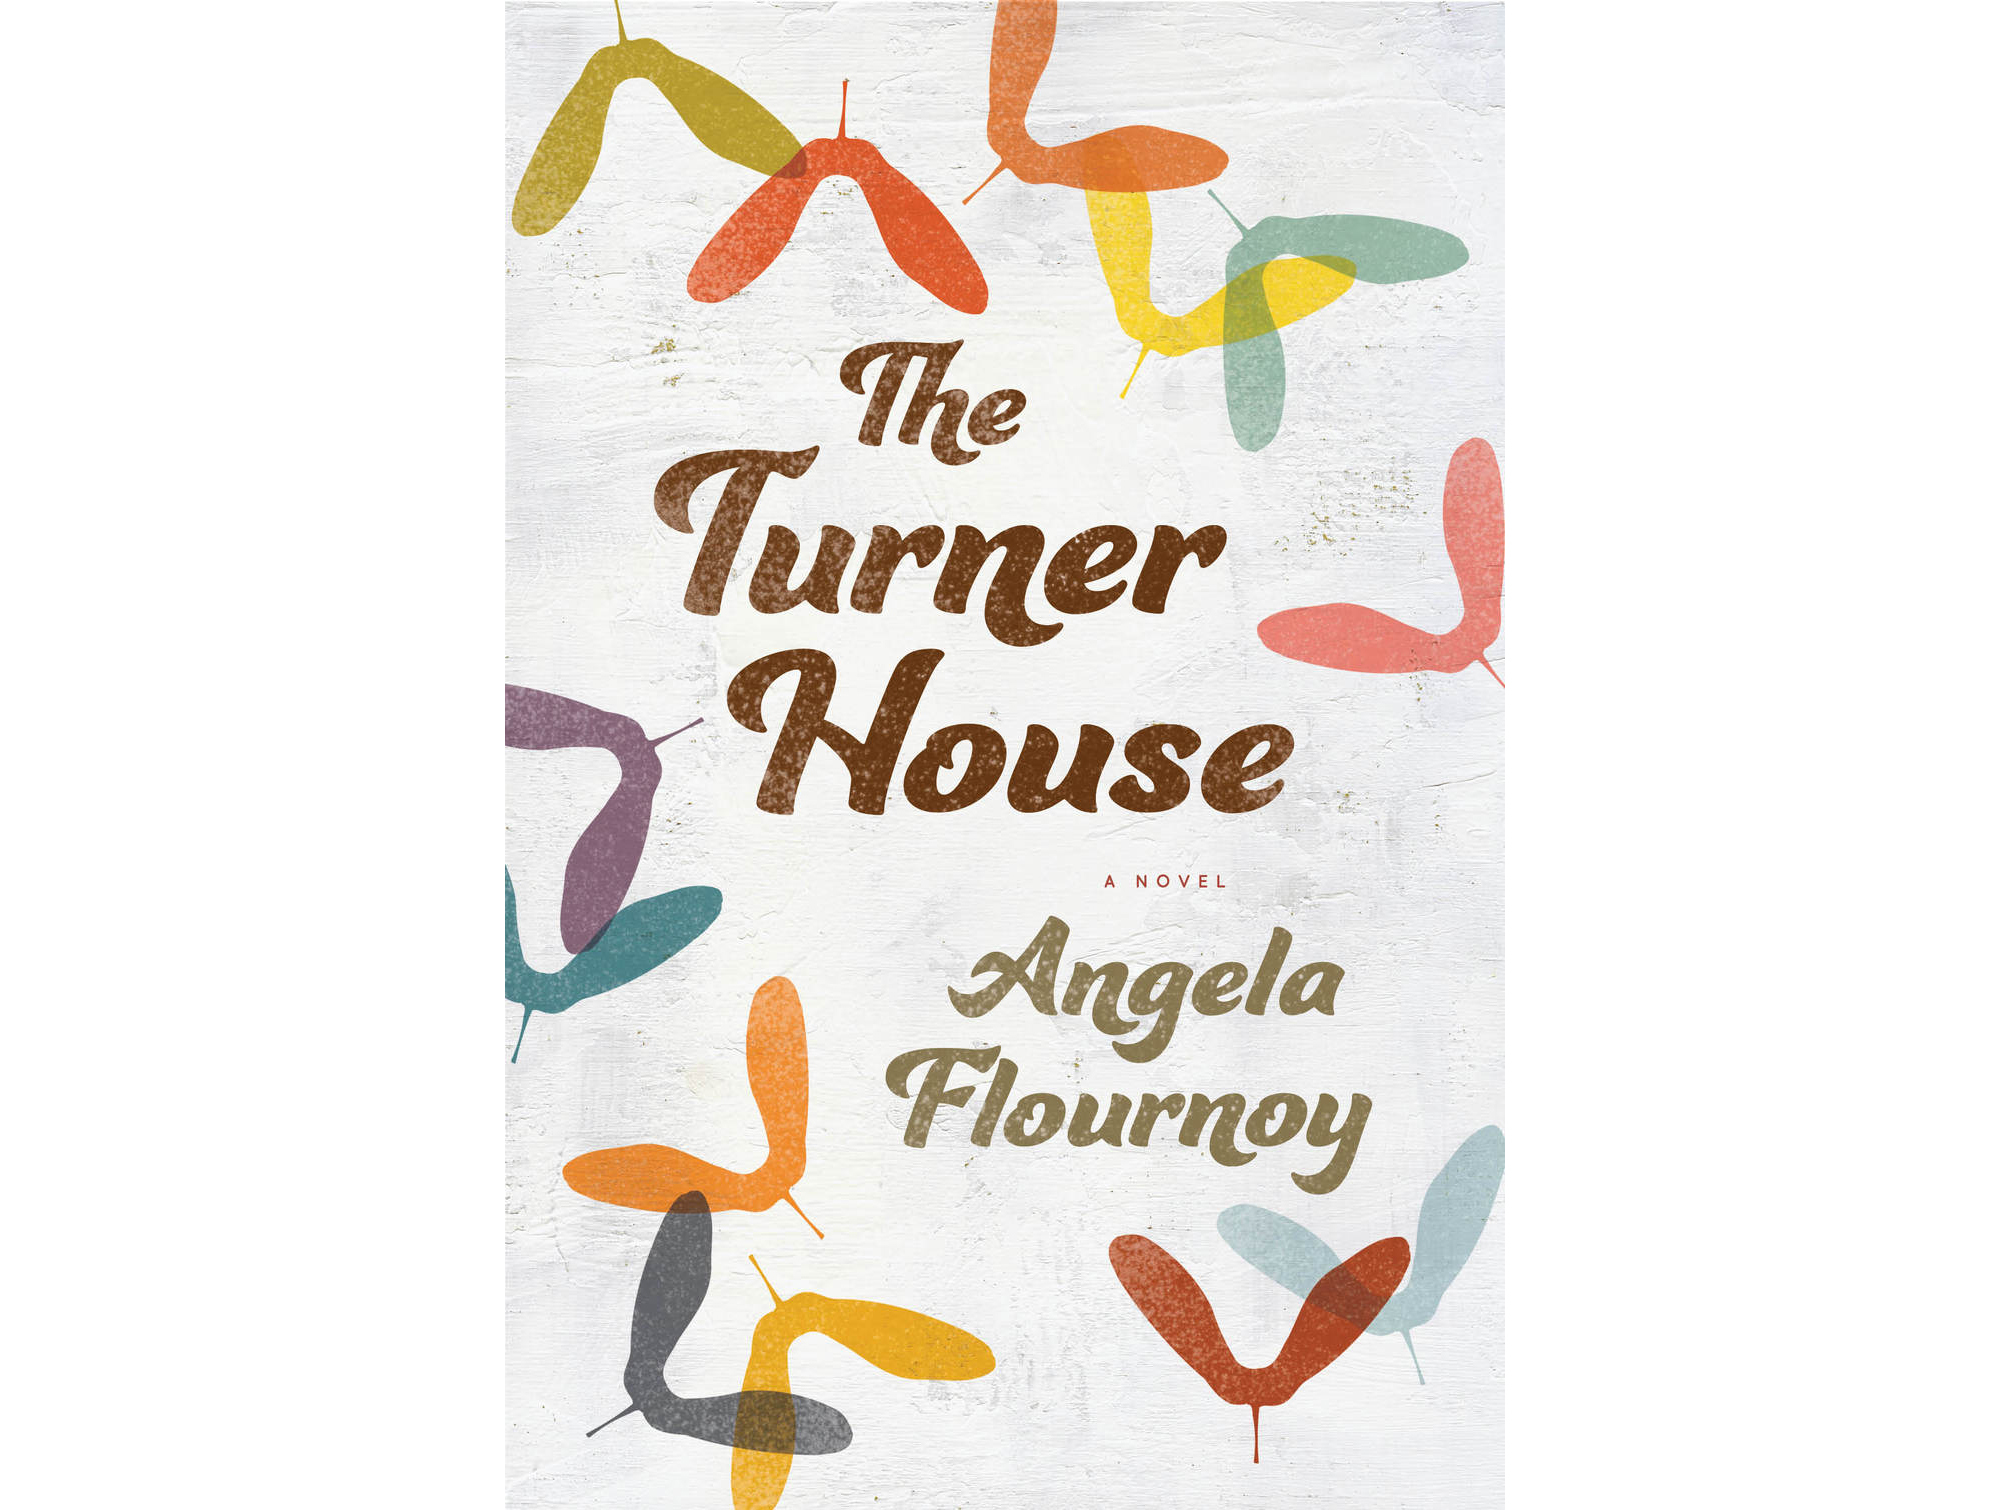 The Turner House, by Angela Flournoy